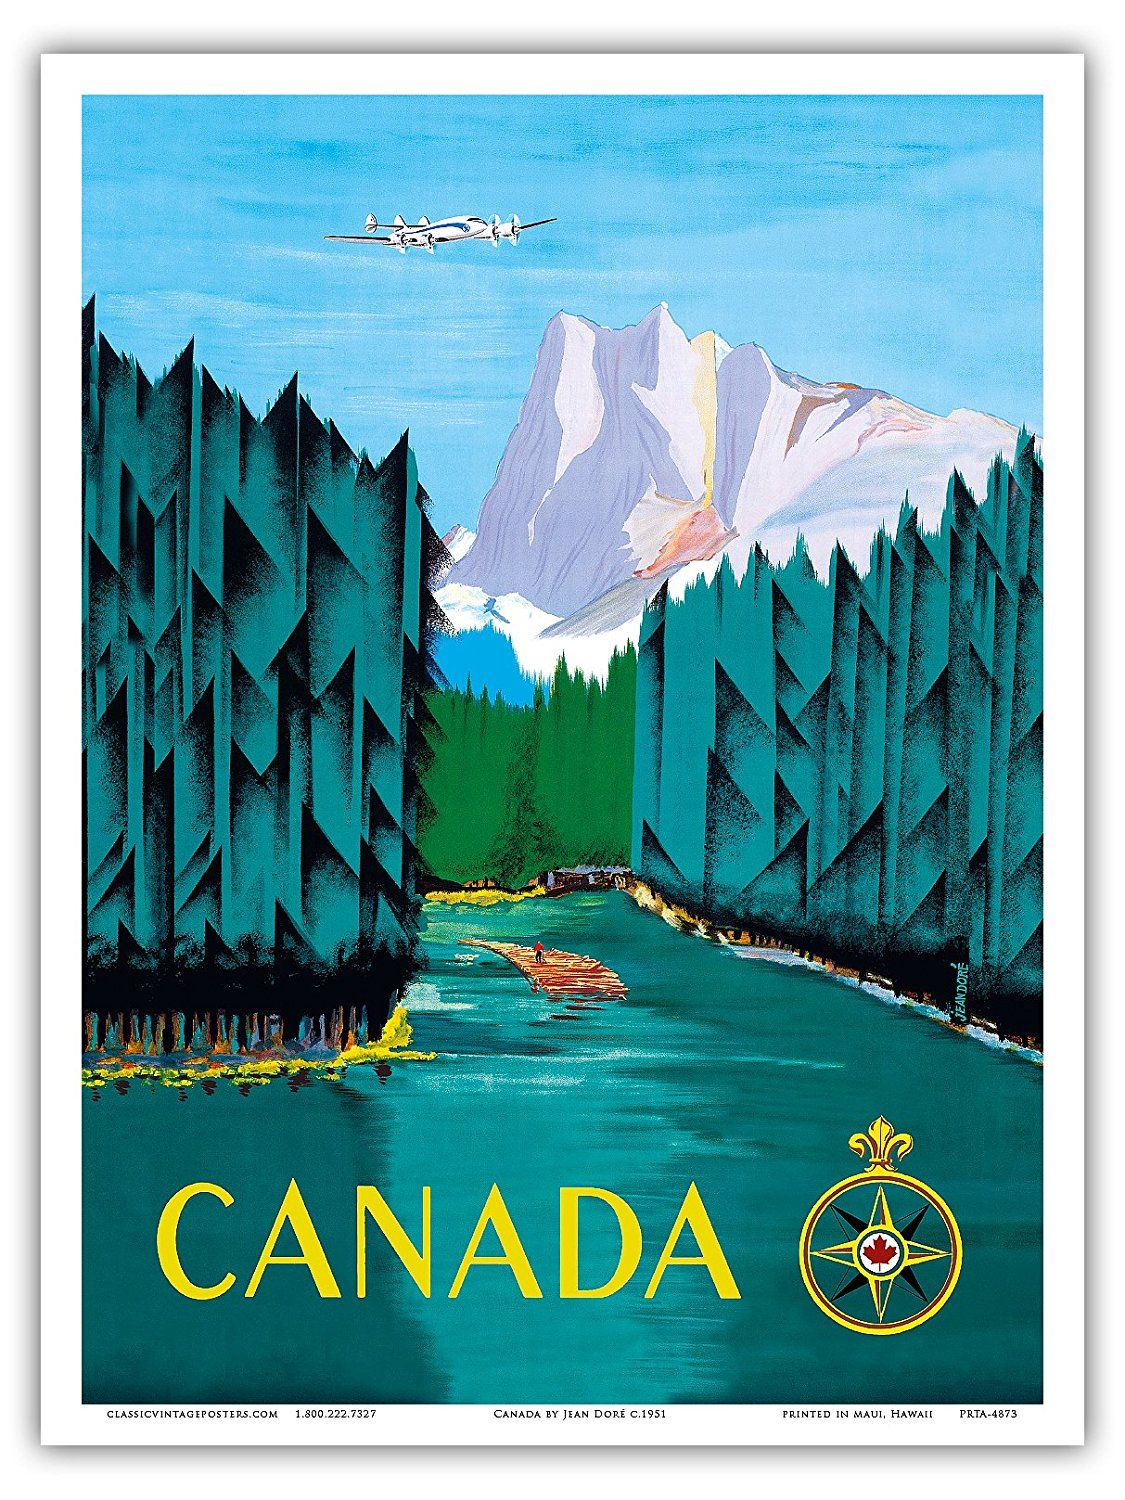 Canada - River Log Driving - Vintage Airline Travel Poster by Jean ...